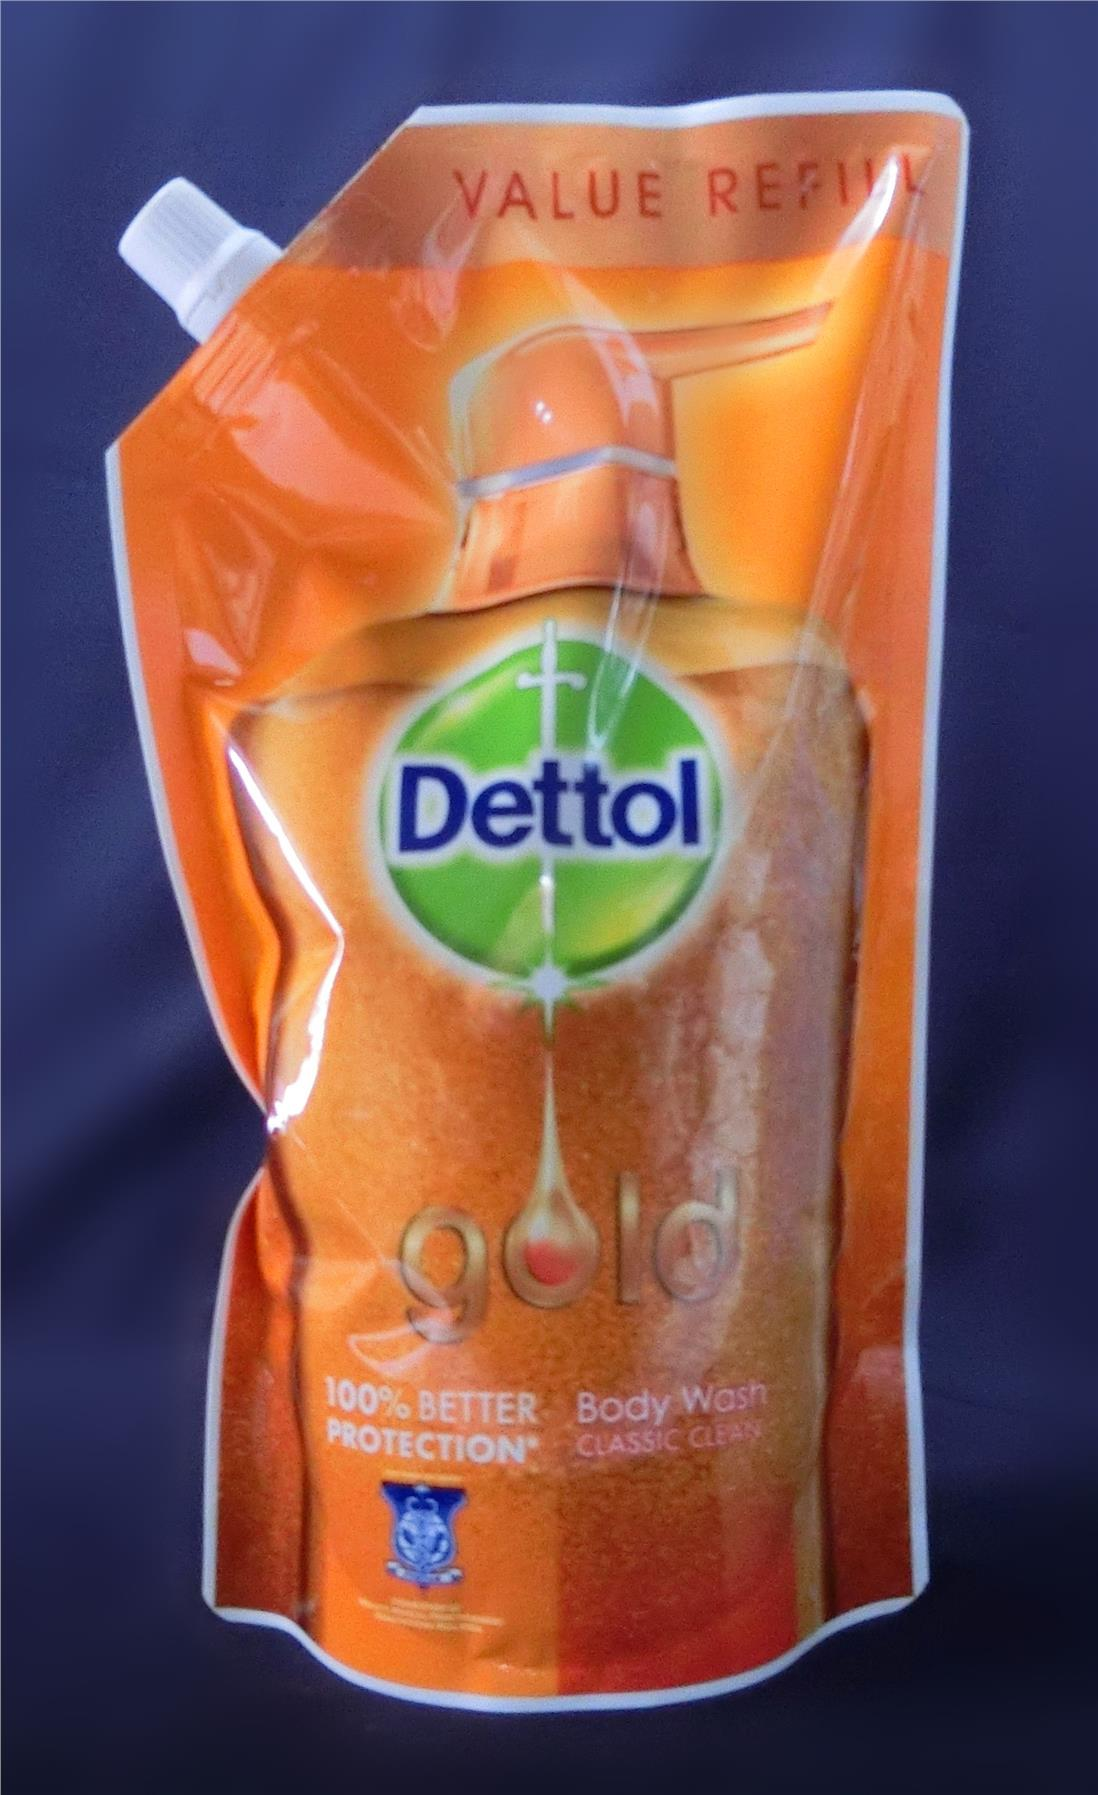 900ml Dettol Gold Body Wash Classic Clean Refill